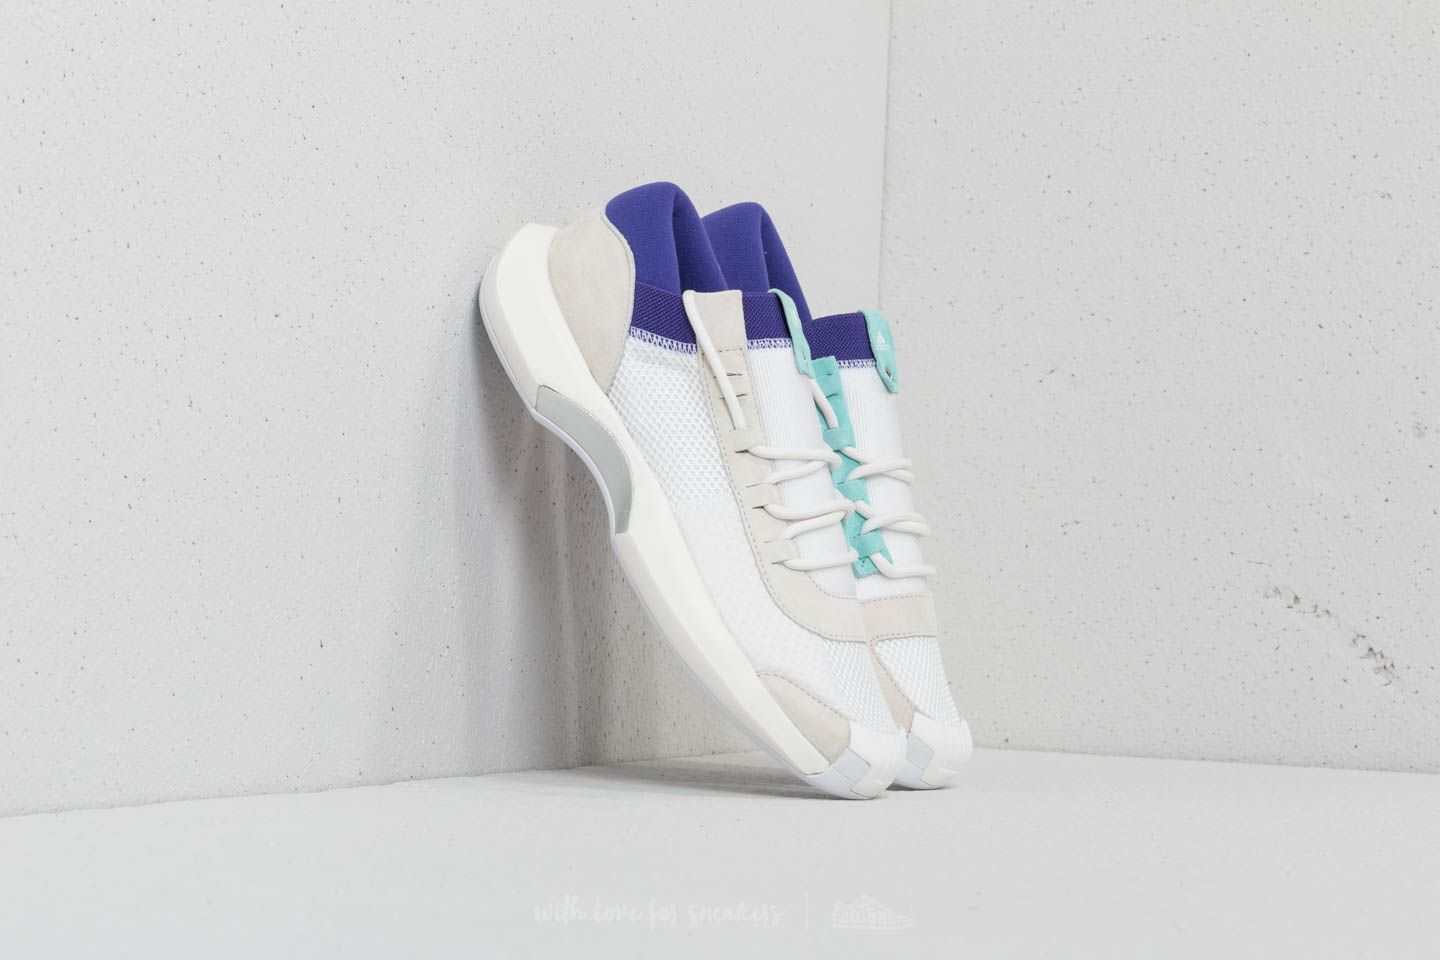 Men's shoes adidas Consortium x Nicekicks Crazy 1 ADV Core White/ Off White/ Energy Aqua